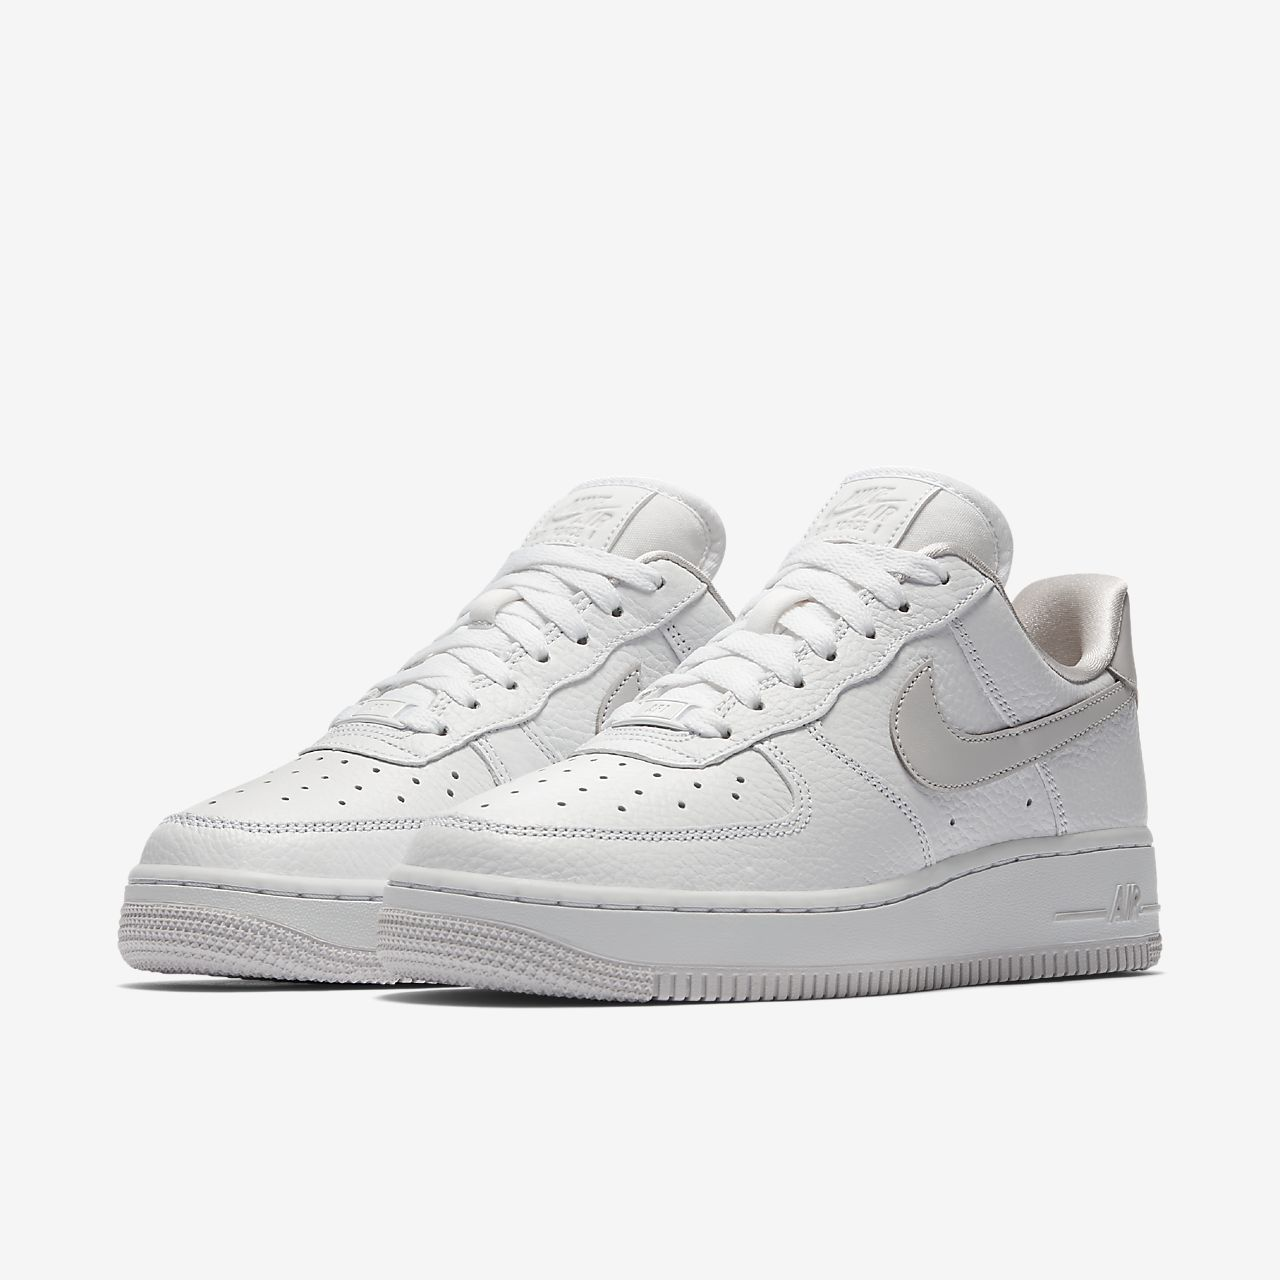 Cheap Price Fake Cheap Enjoy Nike AIR FORCE 1 '07 W women's Shoes (Trainers) in Free Shipping Shop For Buy Cheap Marketable Exclusive Cheap Online ndoiQ